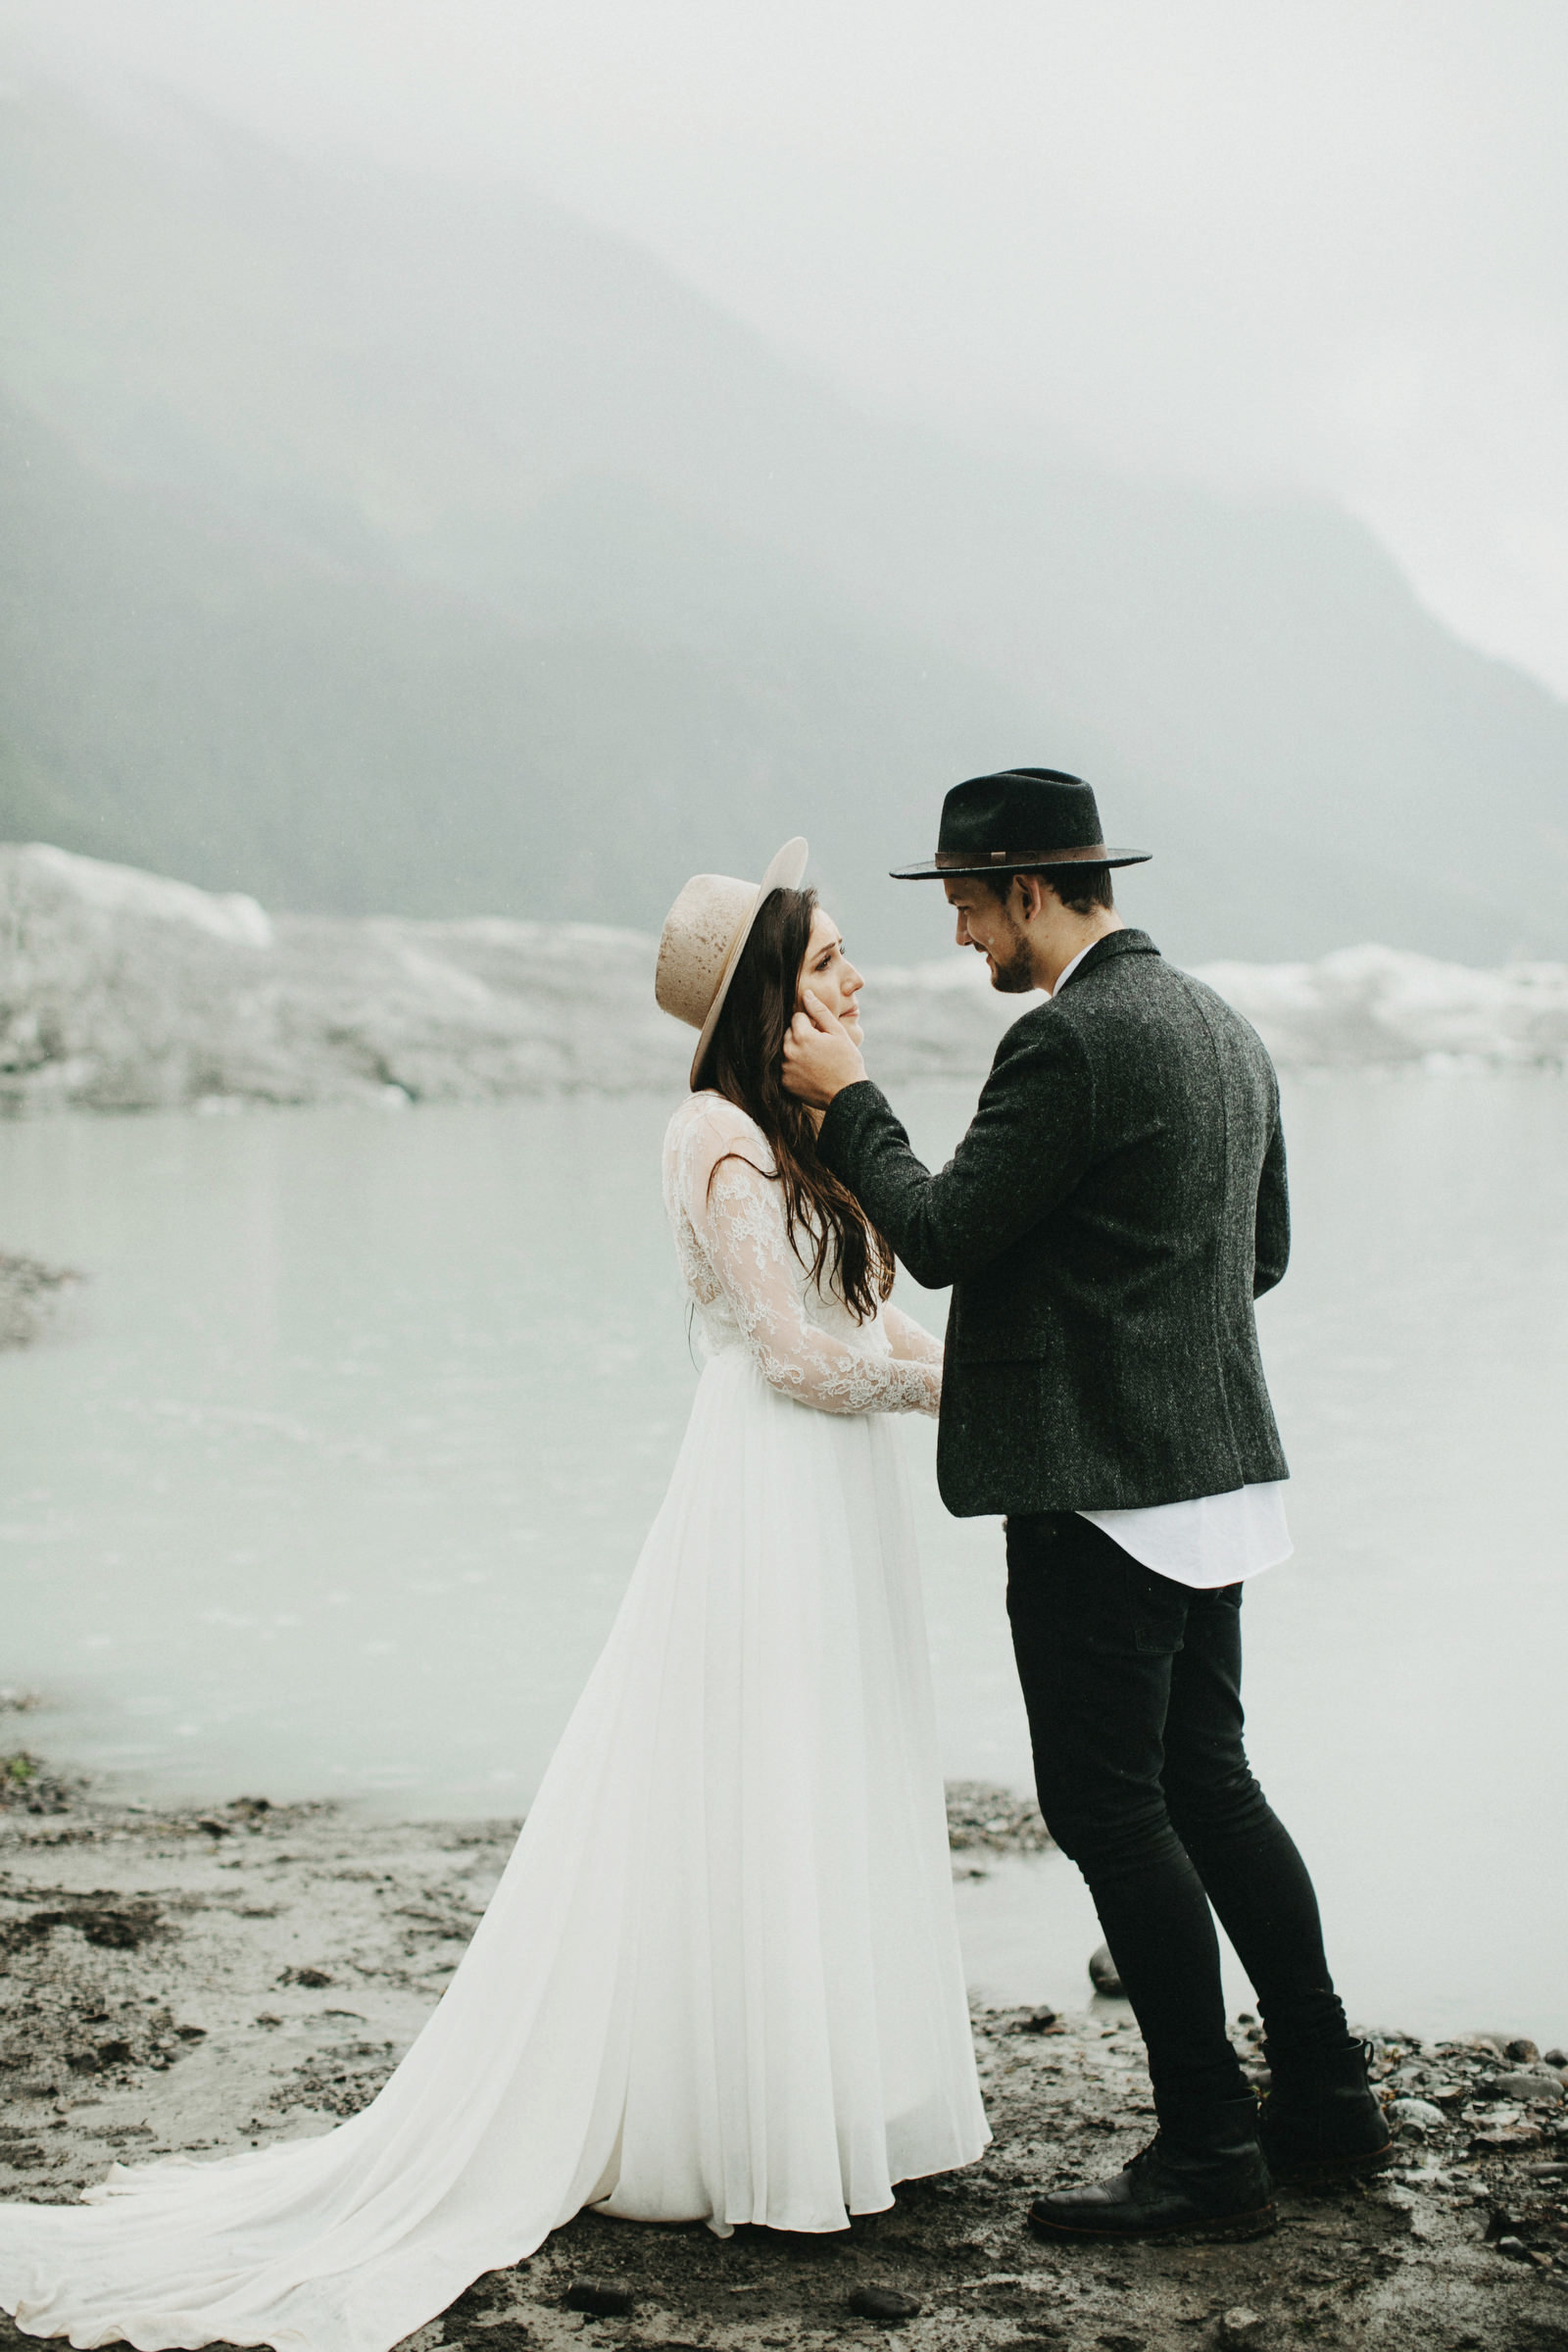 athena-and-camron-alaska-elopement-wedding-inspiration-india-earl-athena-grace-glacier-lagoon-wedding84